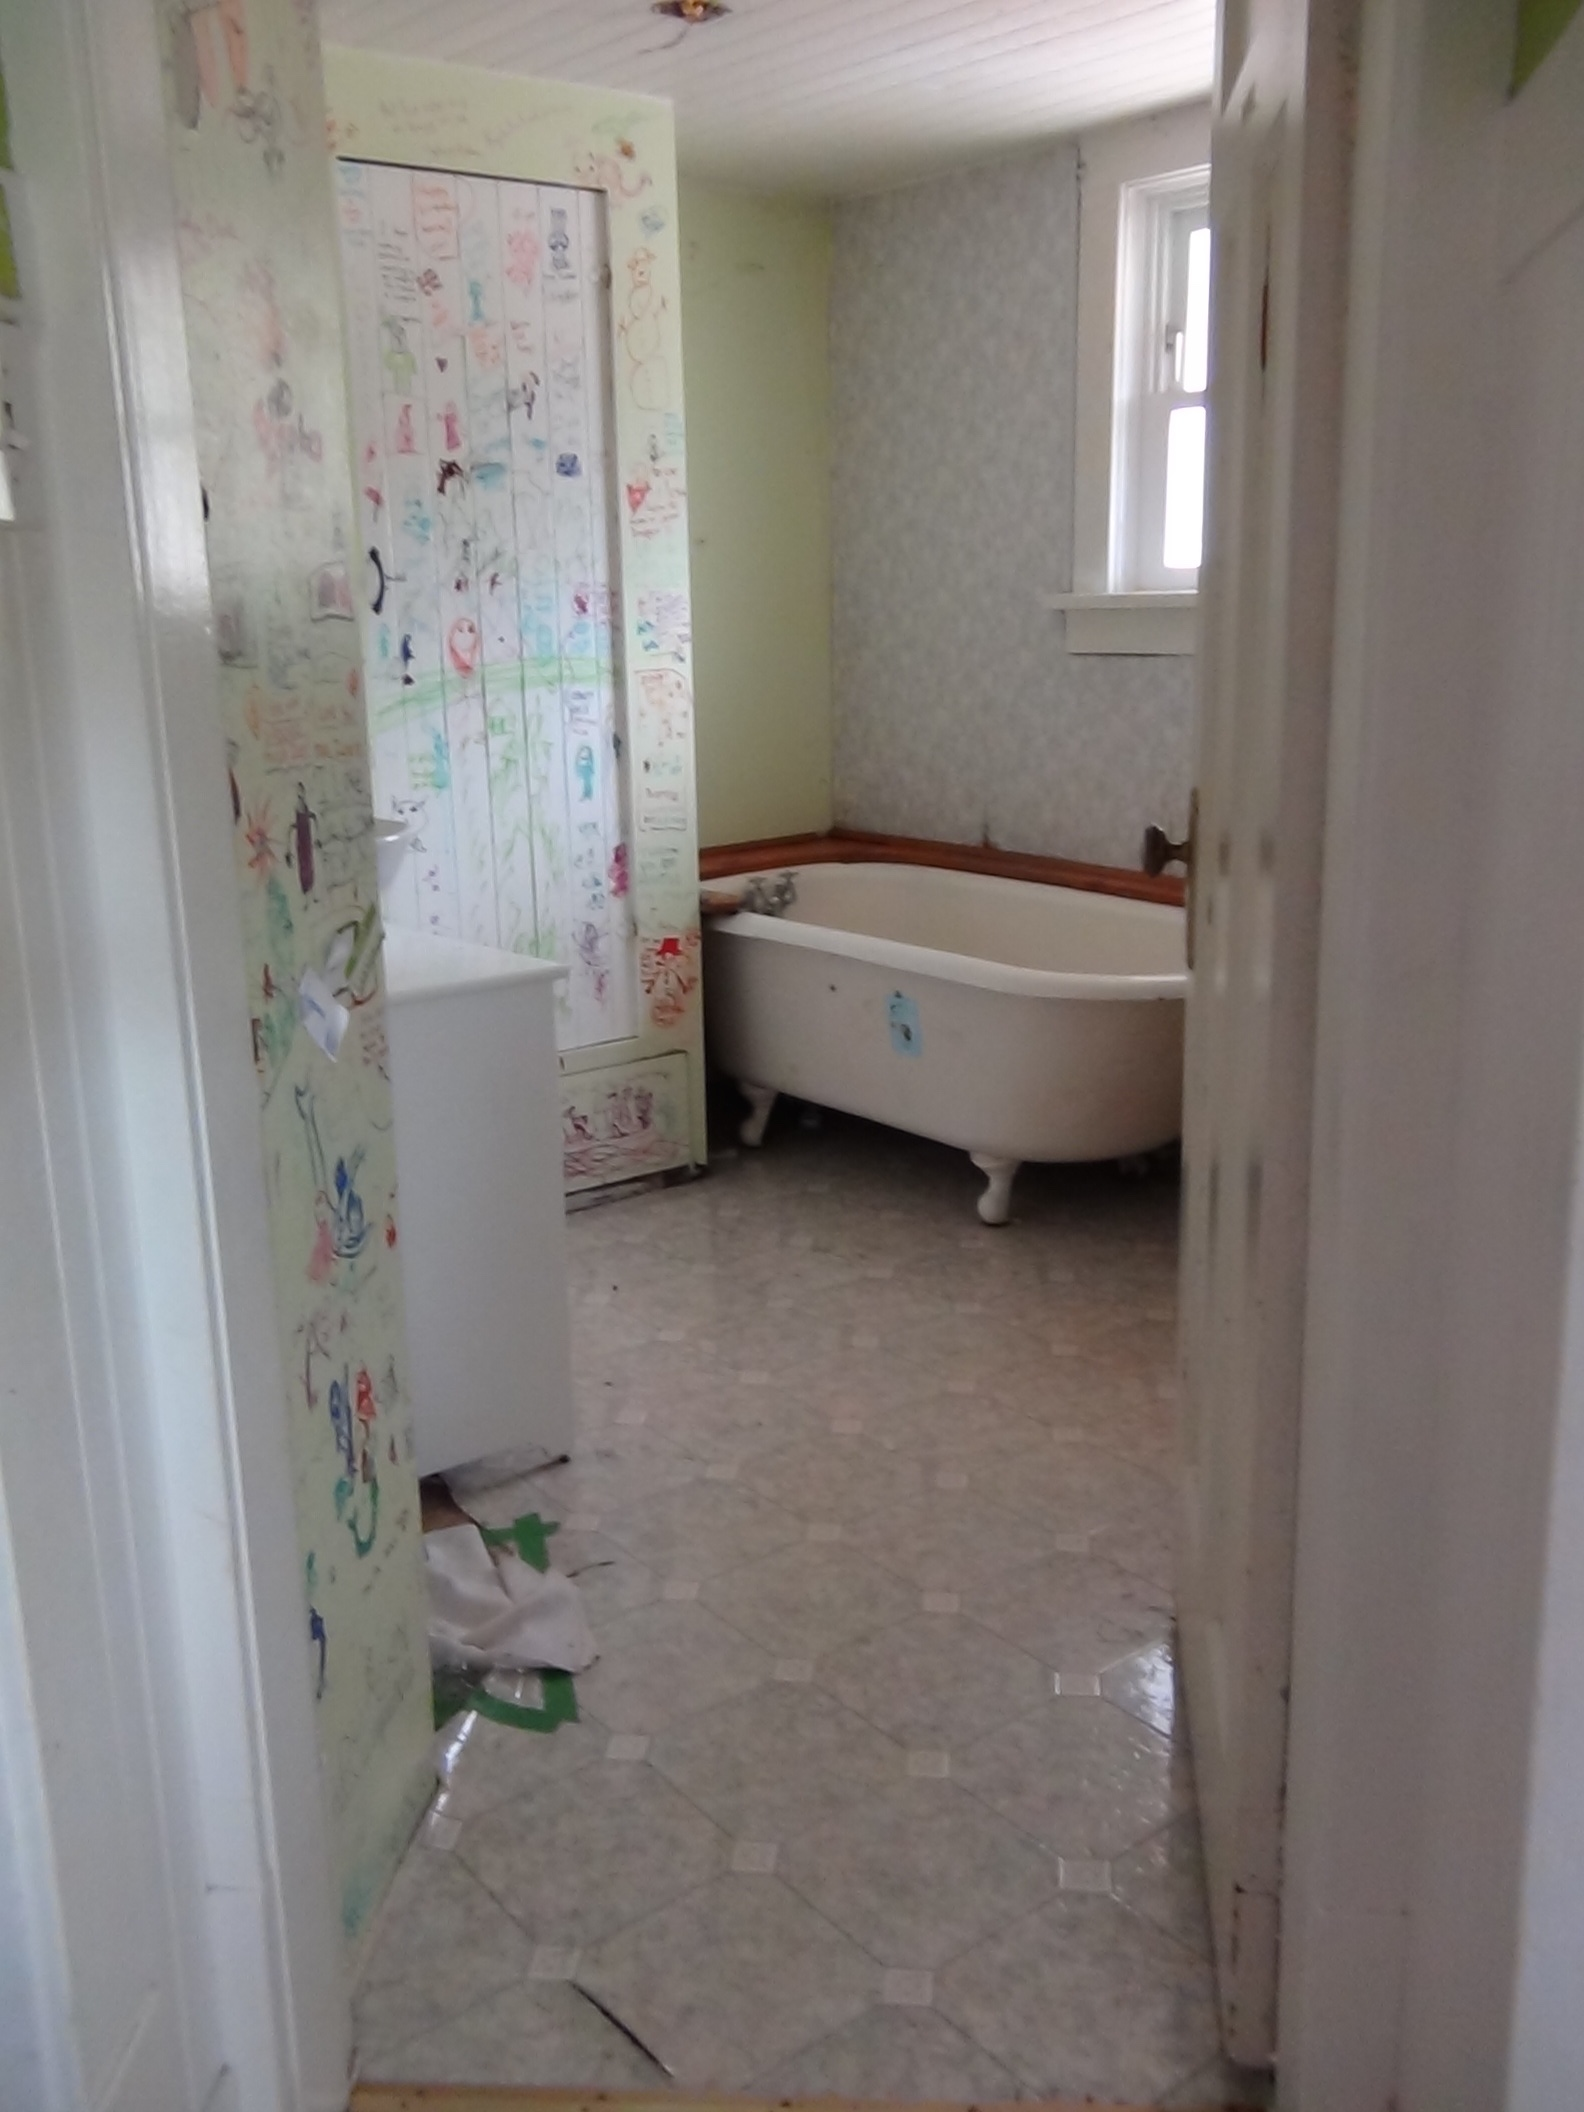 The Bathroom Where It All Started.